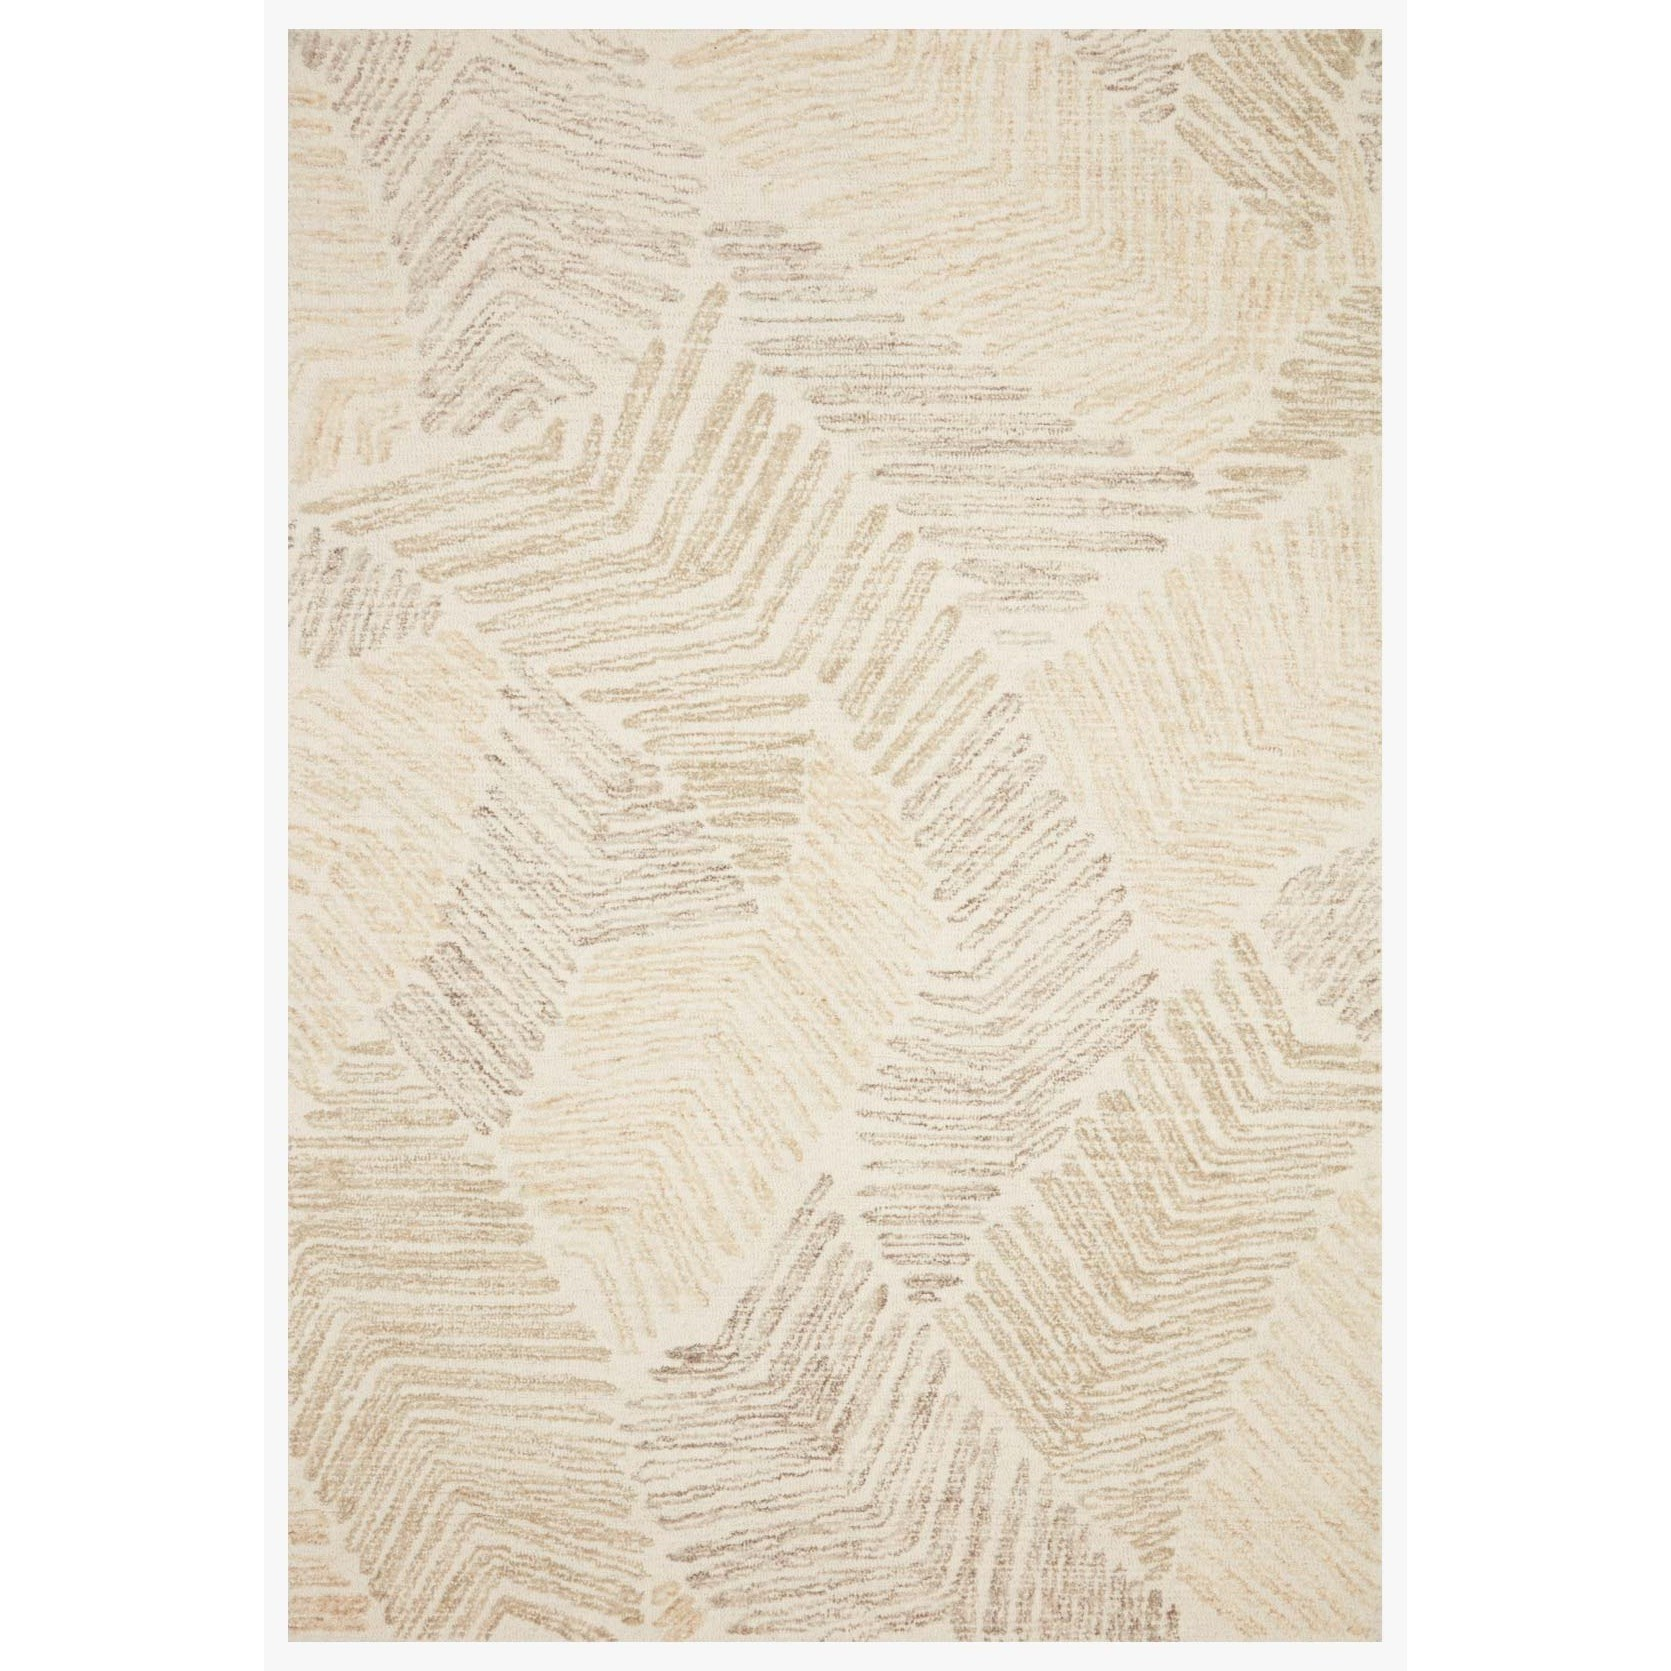 """Milo 18"""" x 18""""  Olive / Natural Rug by Loloi Rugs at Virginia Furniture Market"""